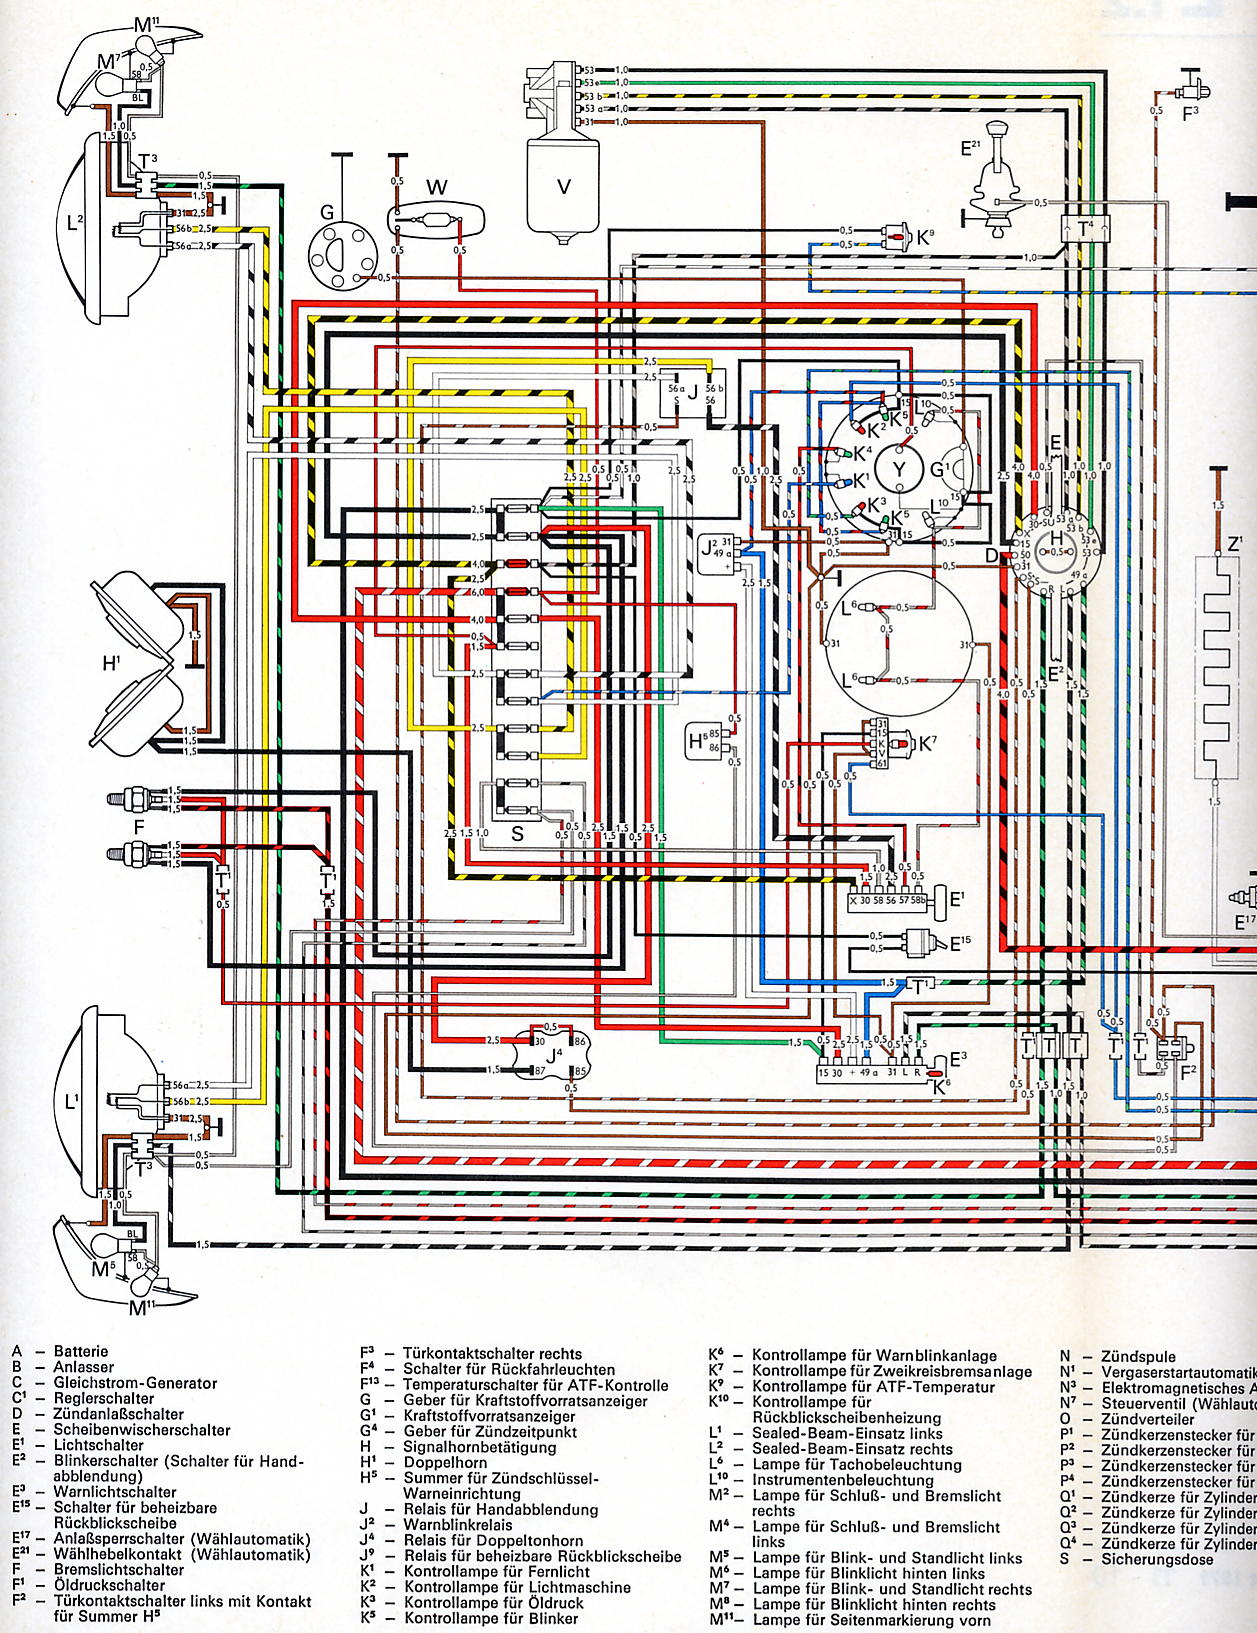 Karmann_Ghia_USA_from_August_1971 1 vw mk1 wiring diagram vw alternator wiring diagram \u2022 wiring citi golf wiring diagram pdf at webbmarketing.co